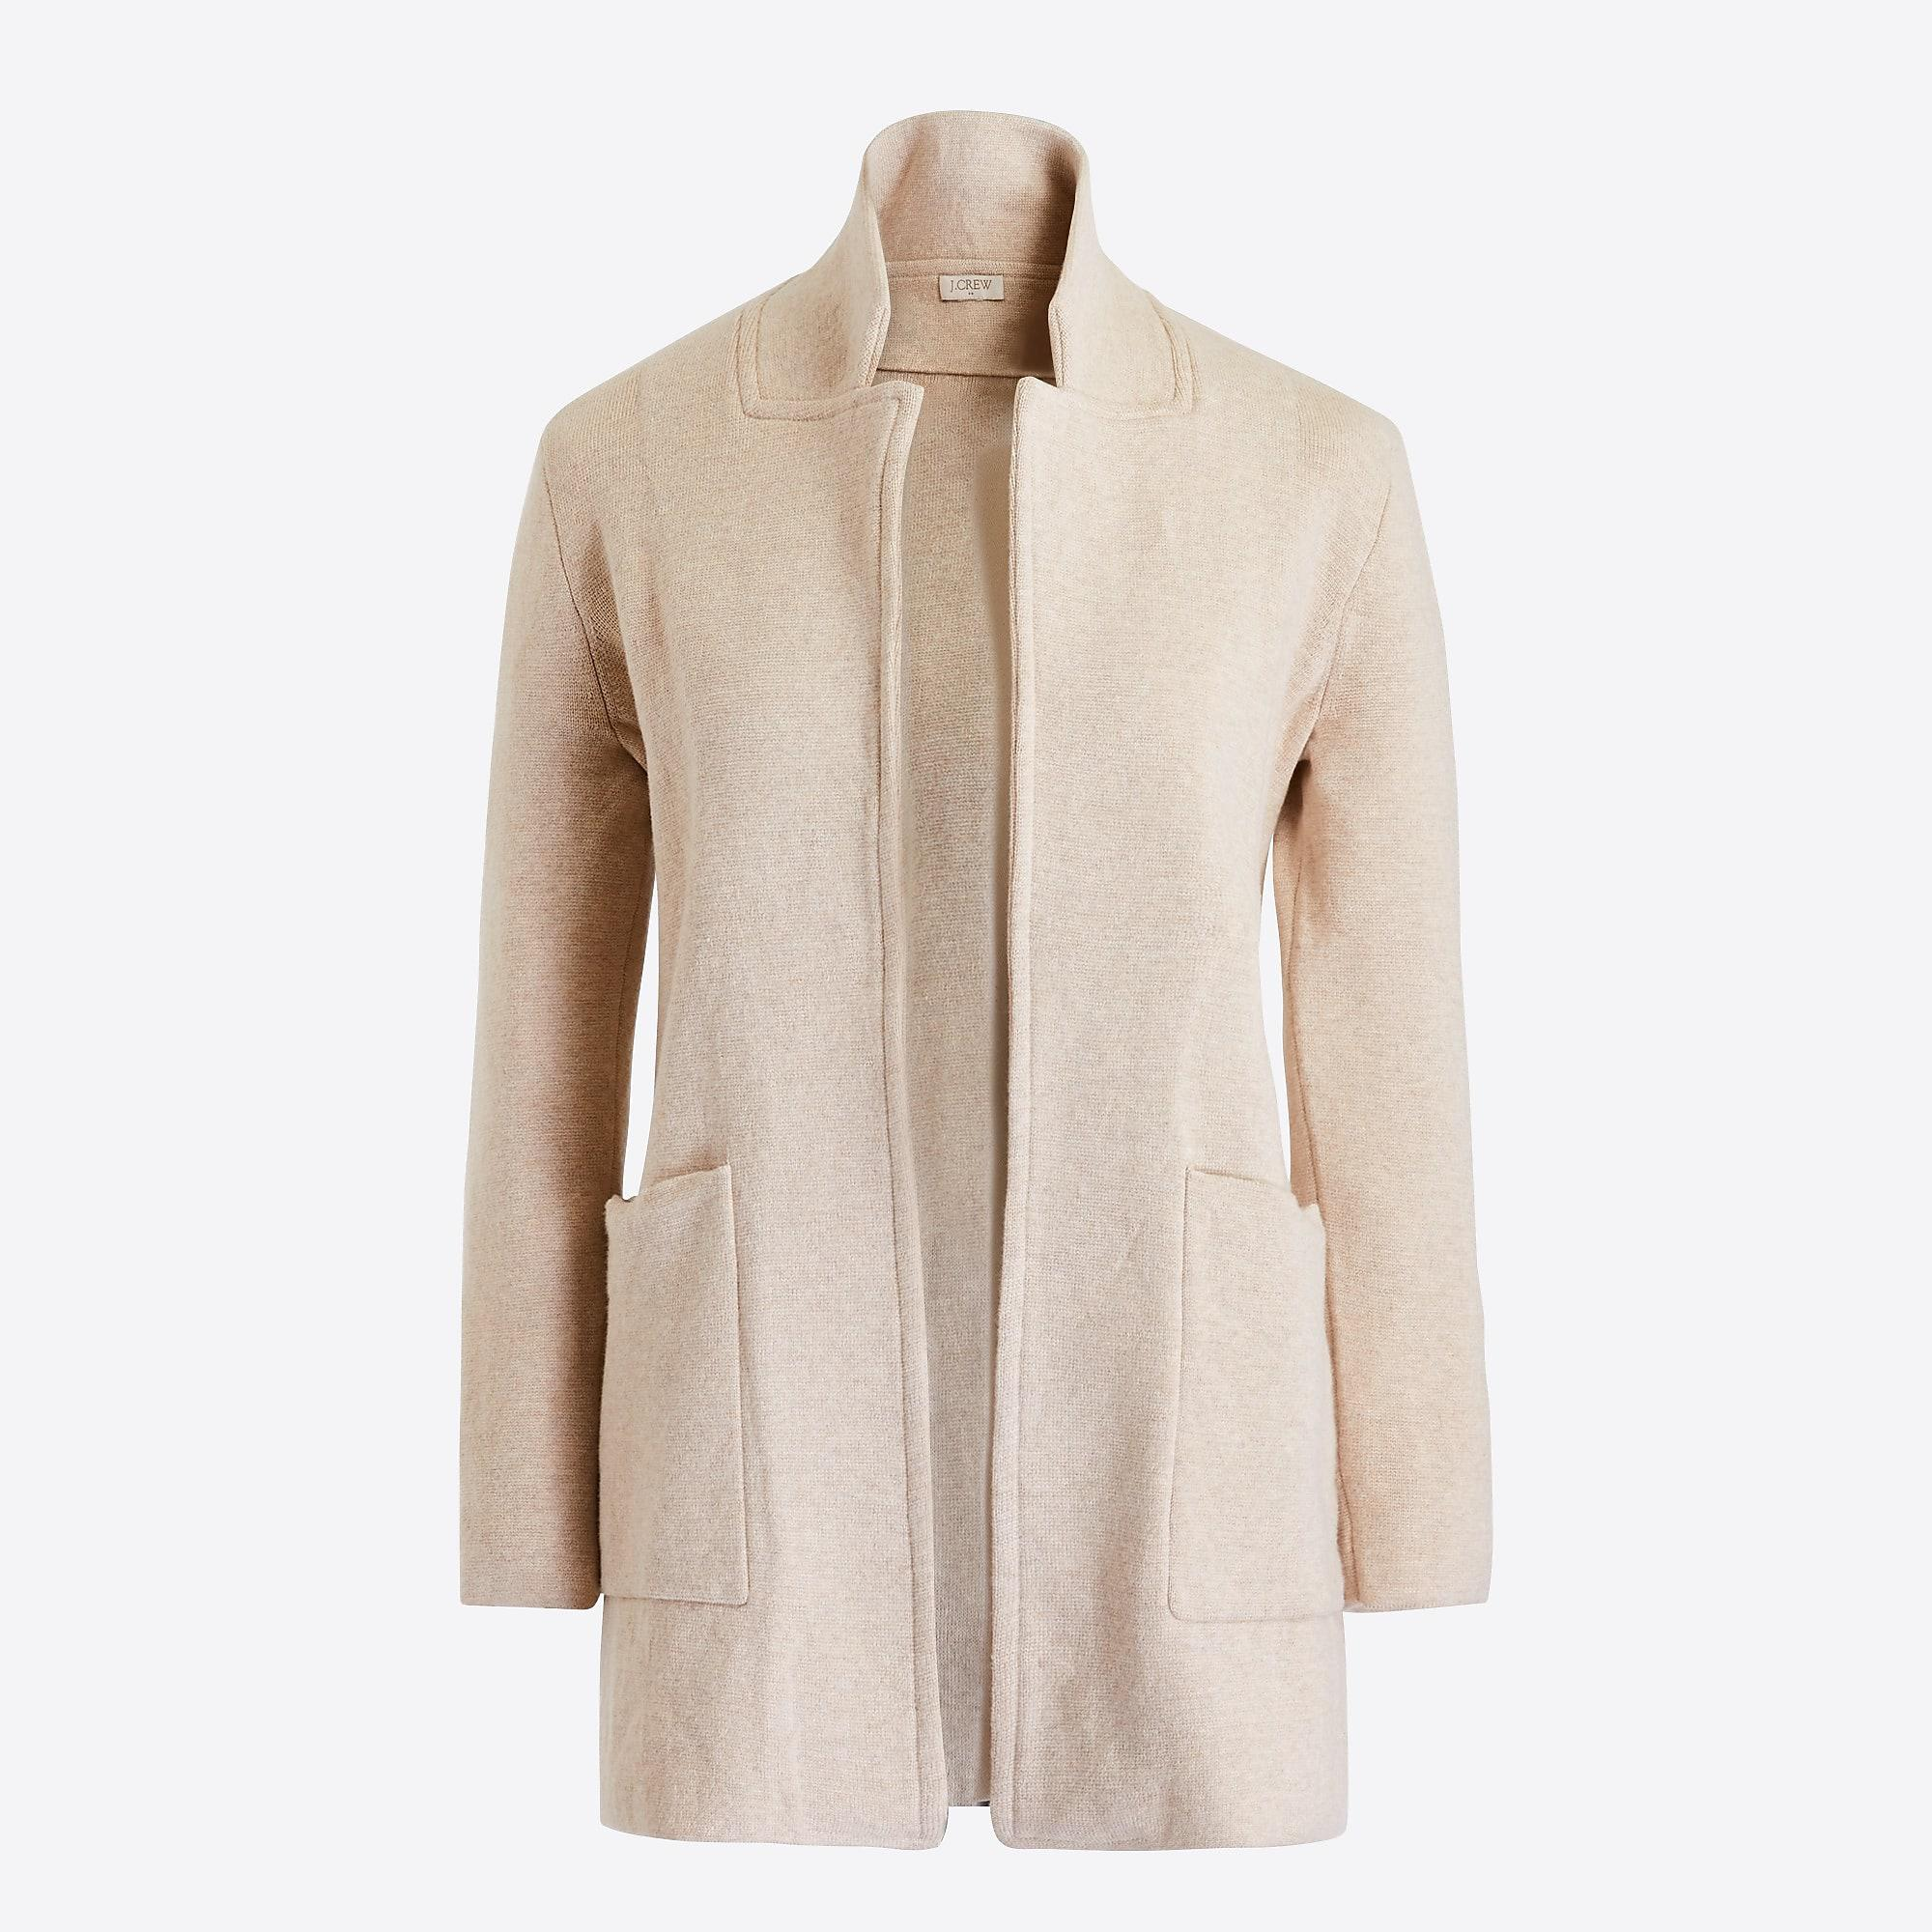 6f115d8c568 J.Crew Open-front Sweater Blazer in Natural - Lyst